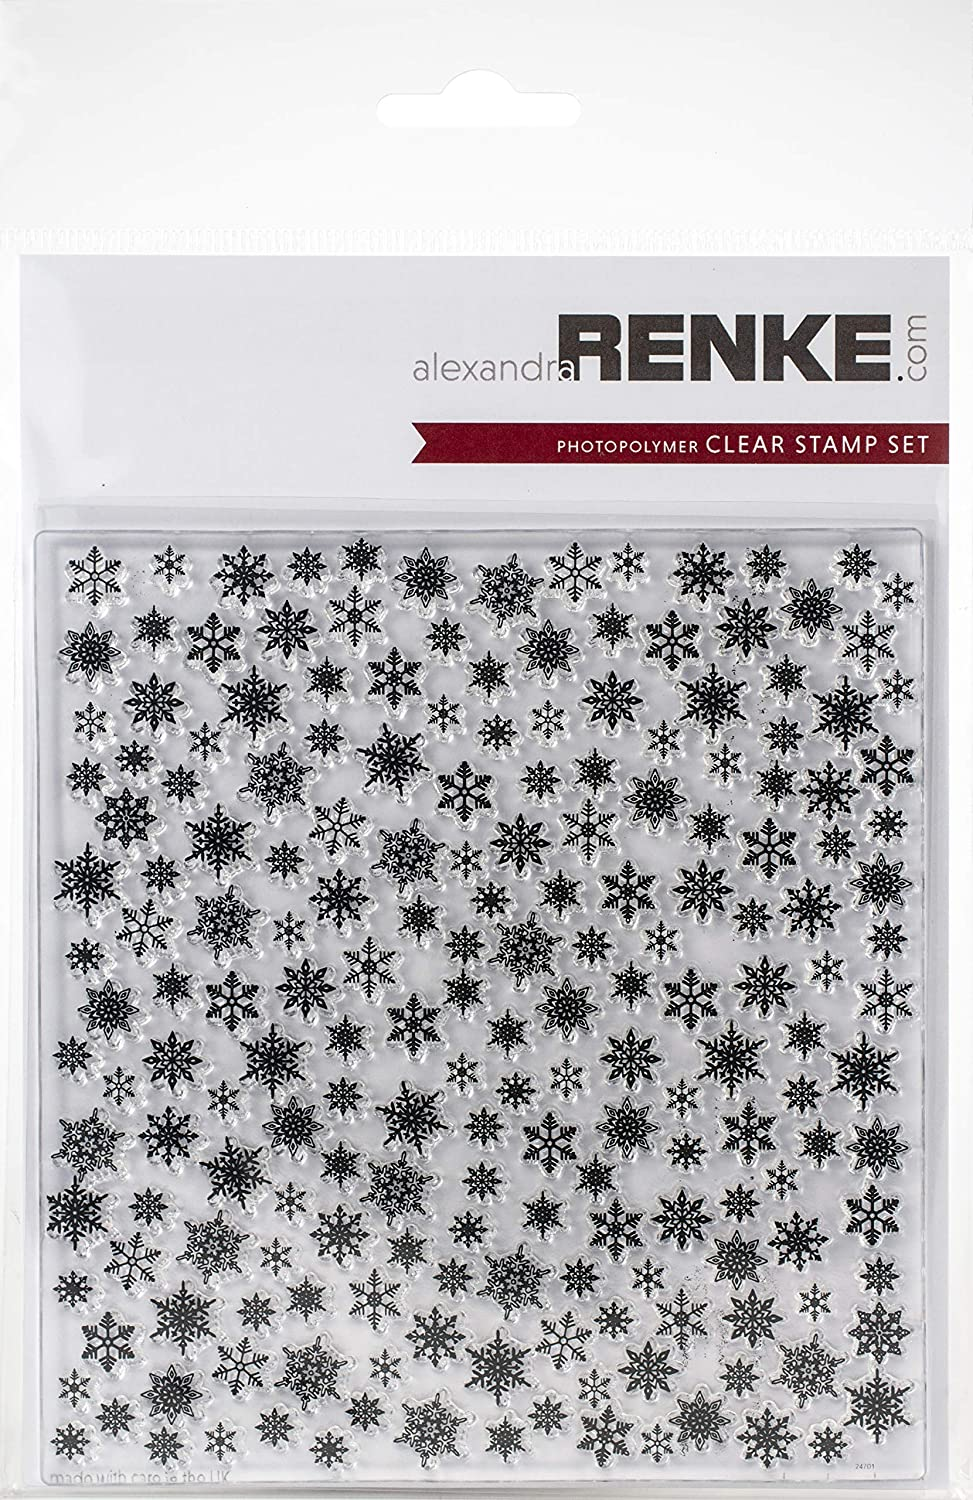 Abstract CLR Stamps ALEXANDRA RENKE 3PL Snowflakes Pattern